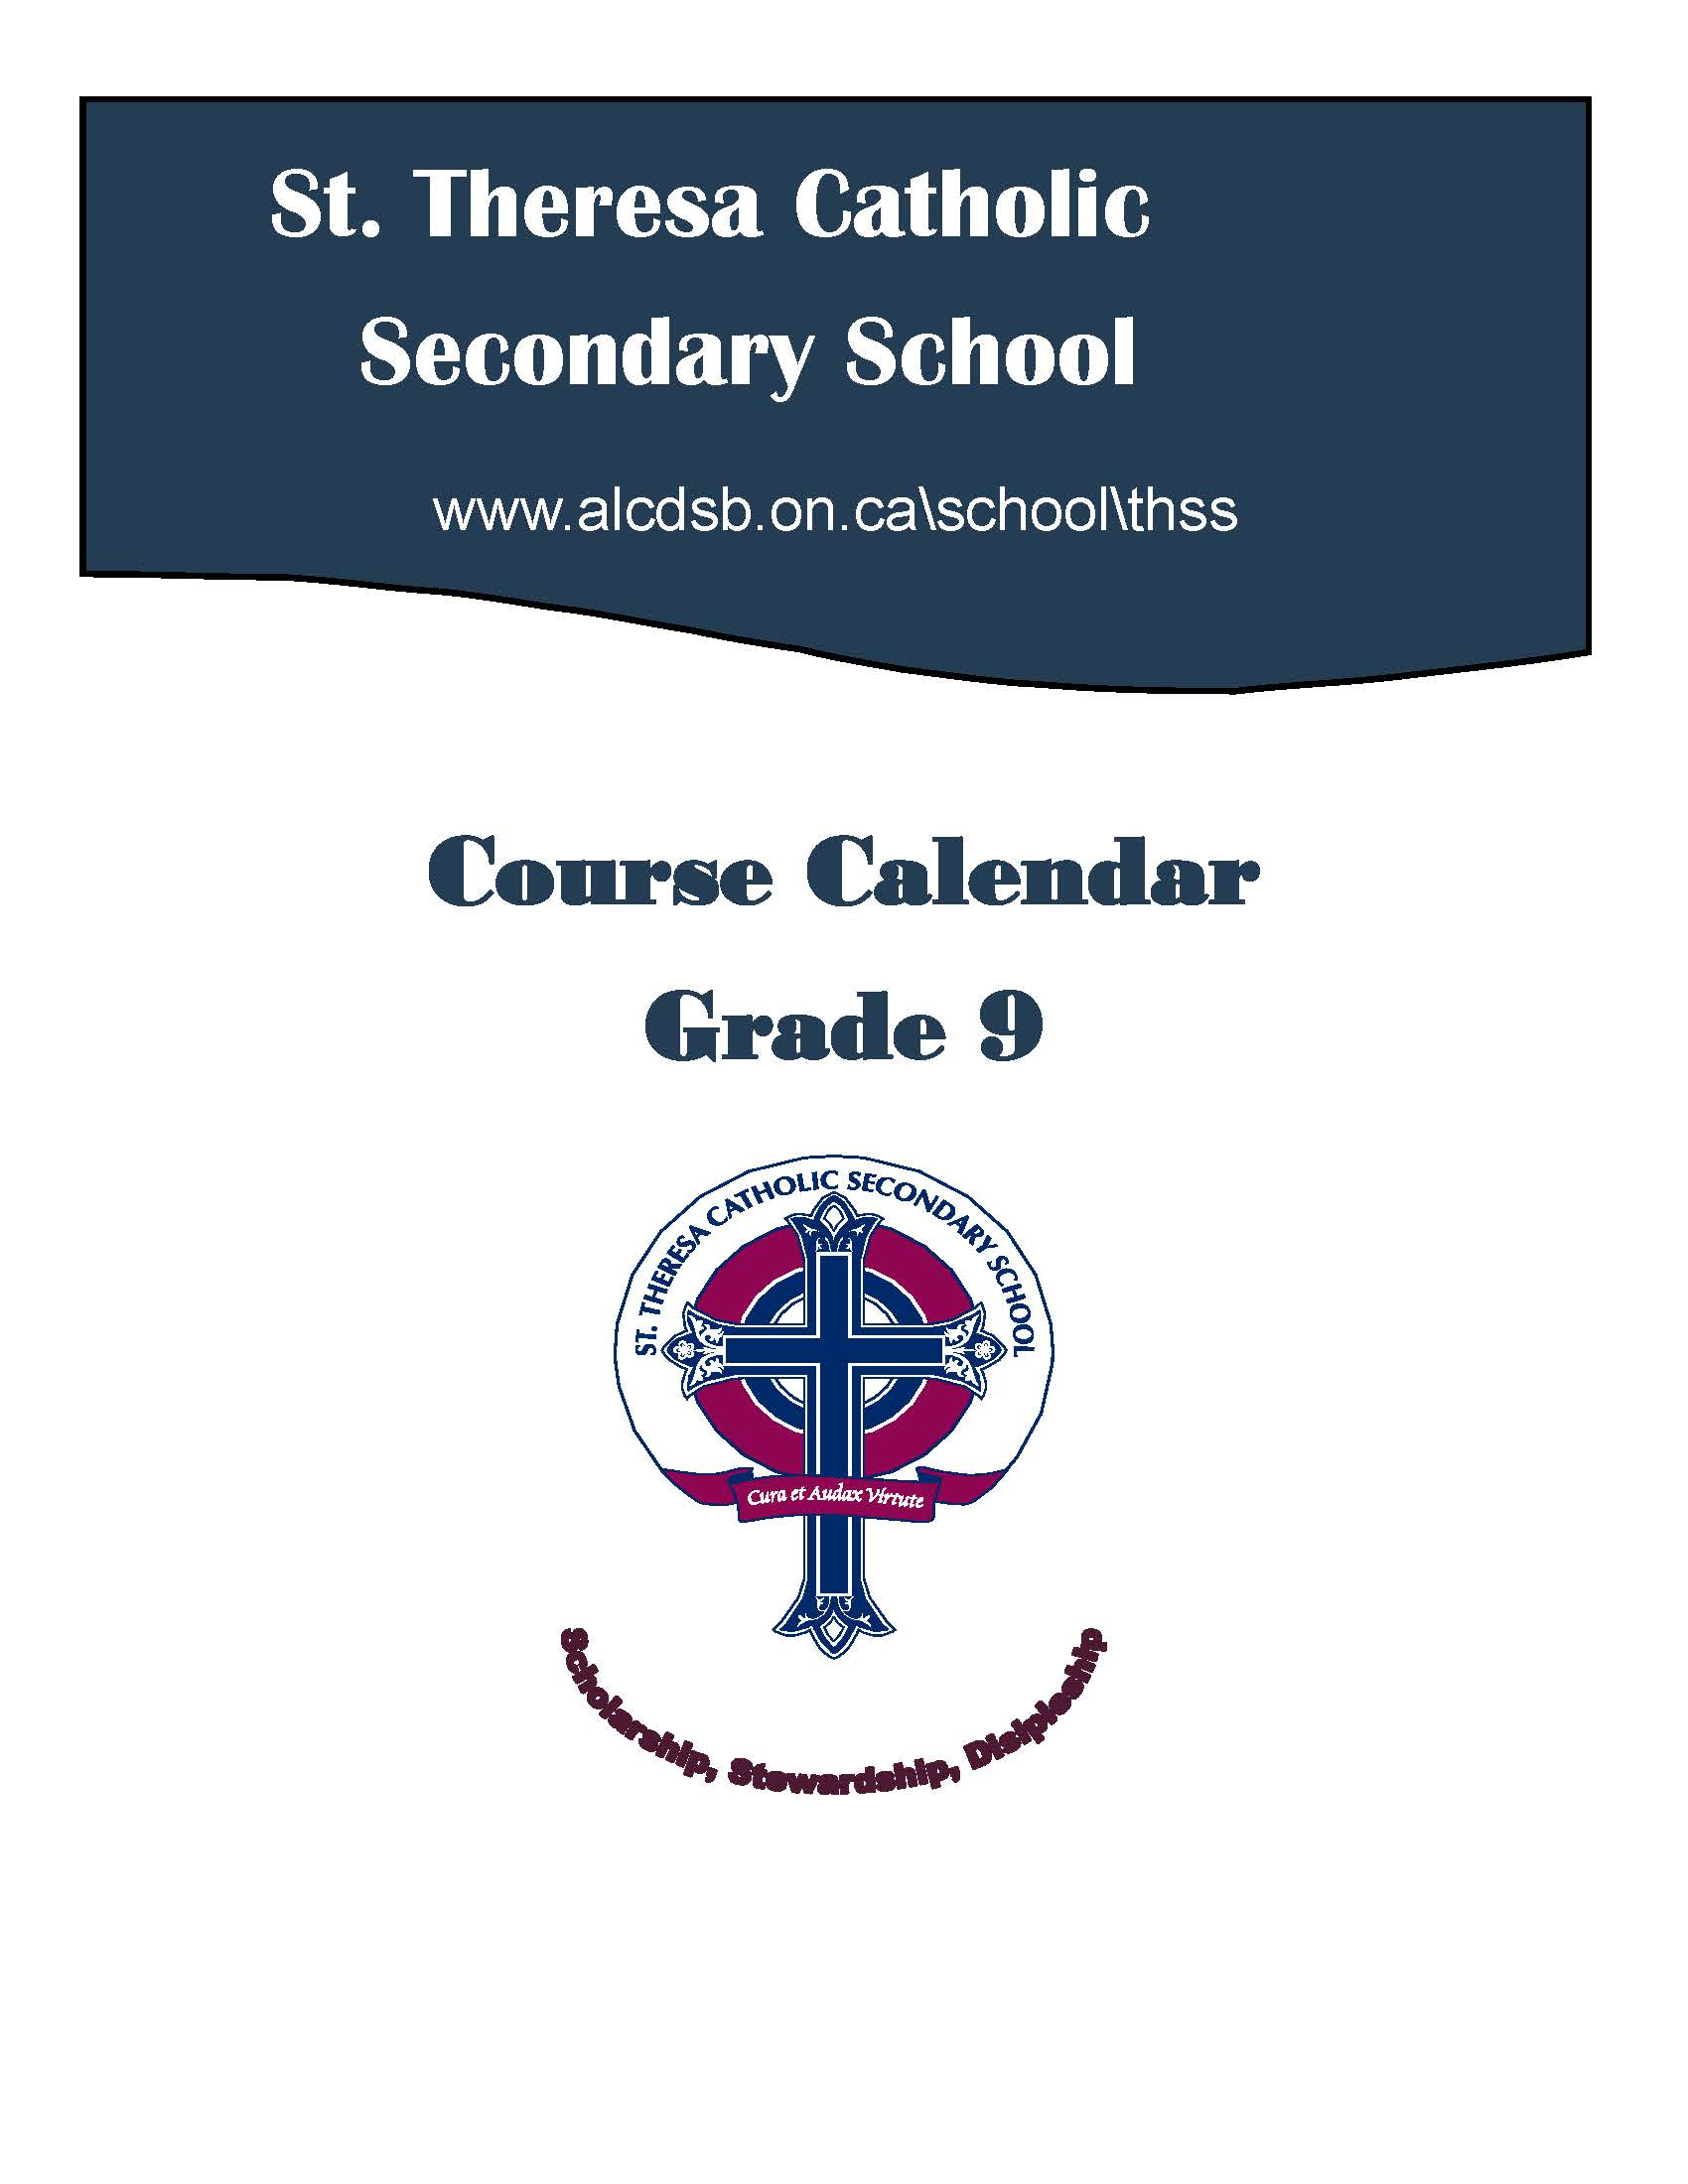 Gr 9 Cover Page - course calendar.jpg